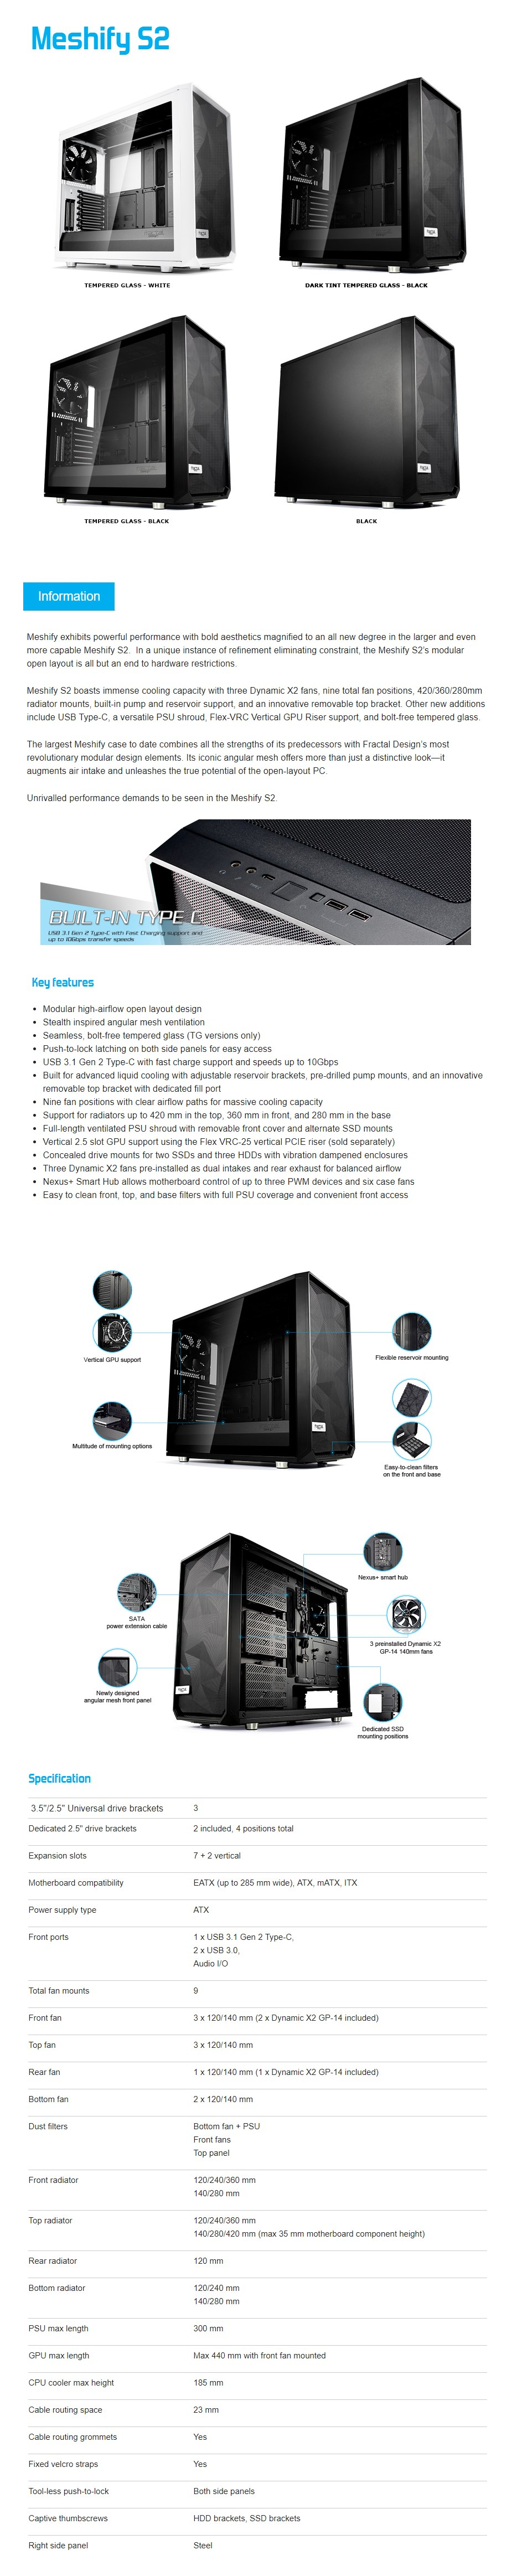 Fractal Design Meshify S2 Dark Tempered Glass USB-C Mid-Tower E-ATX Case - Black - Desktop Overview 1